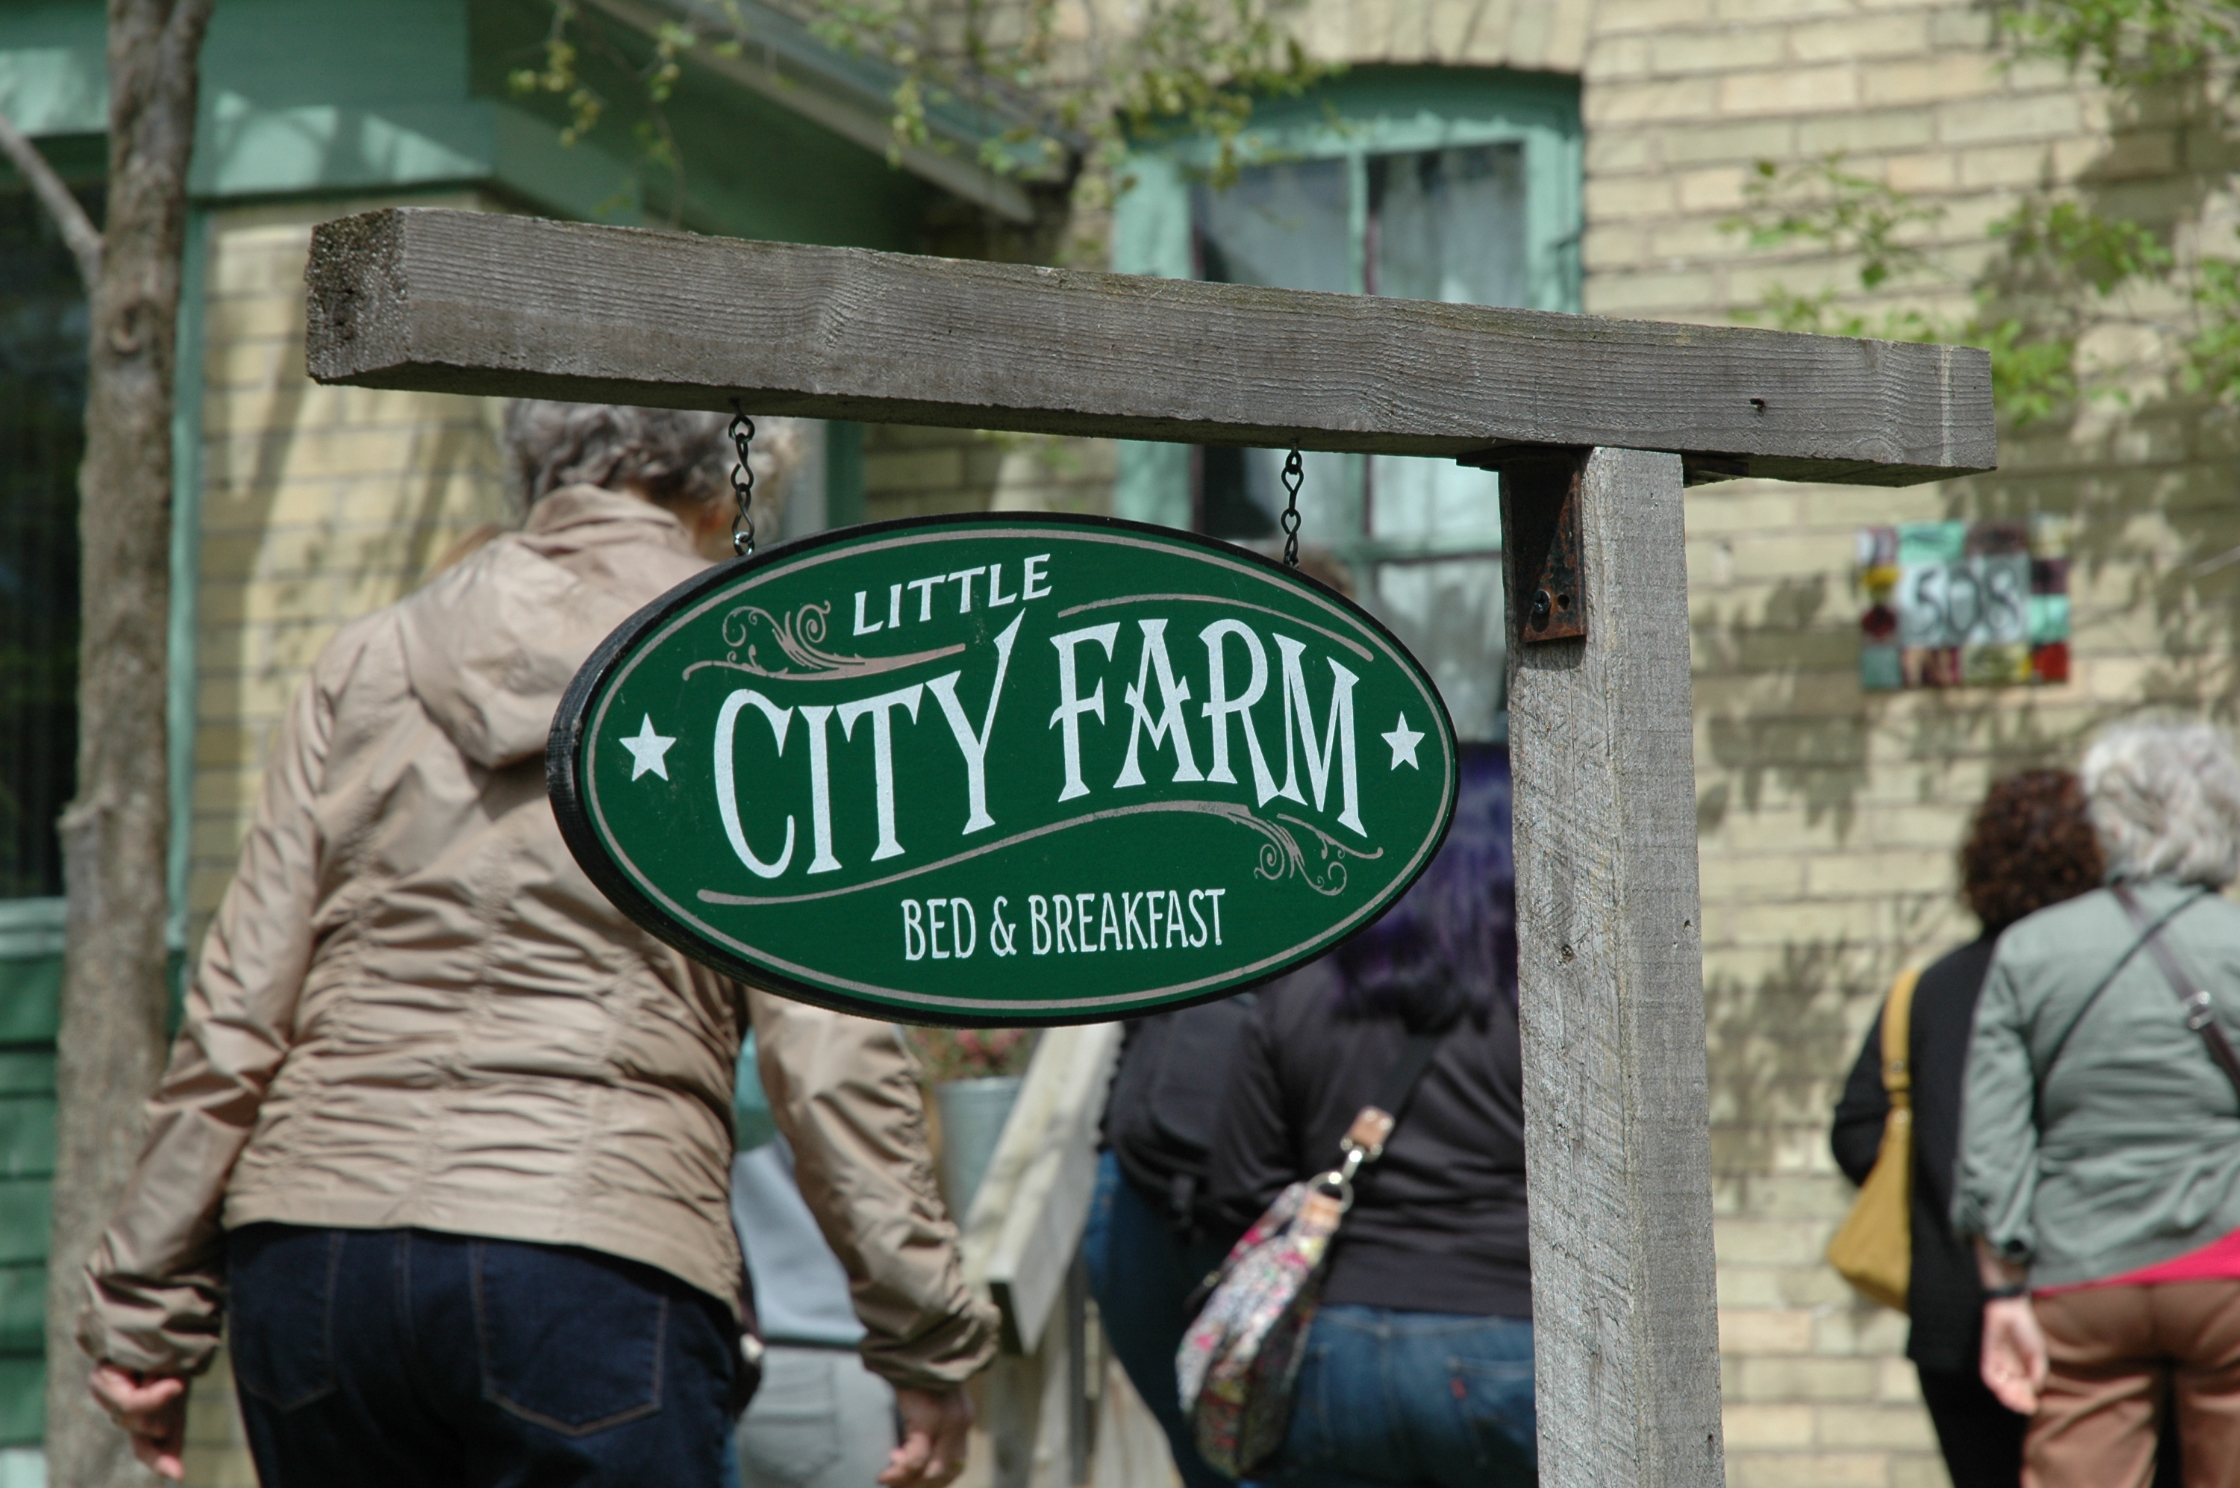 Little City Farm